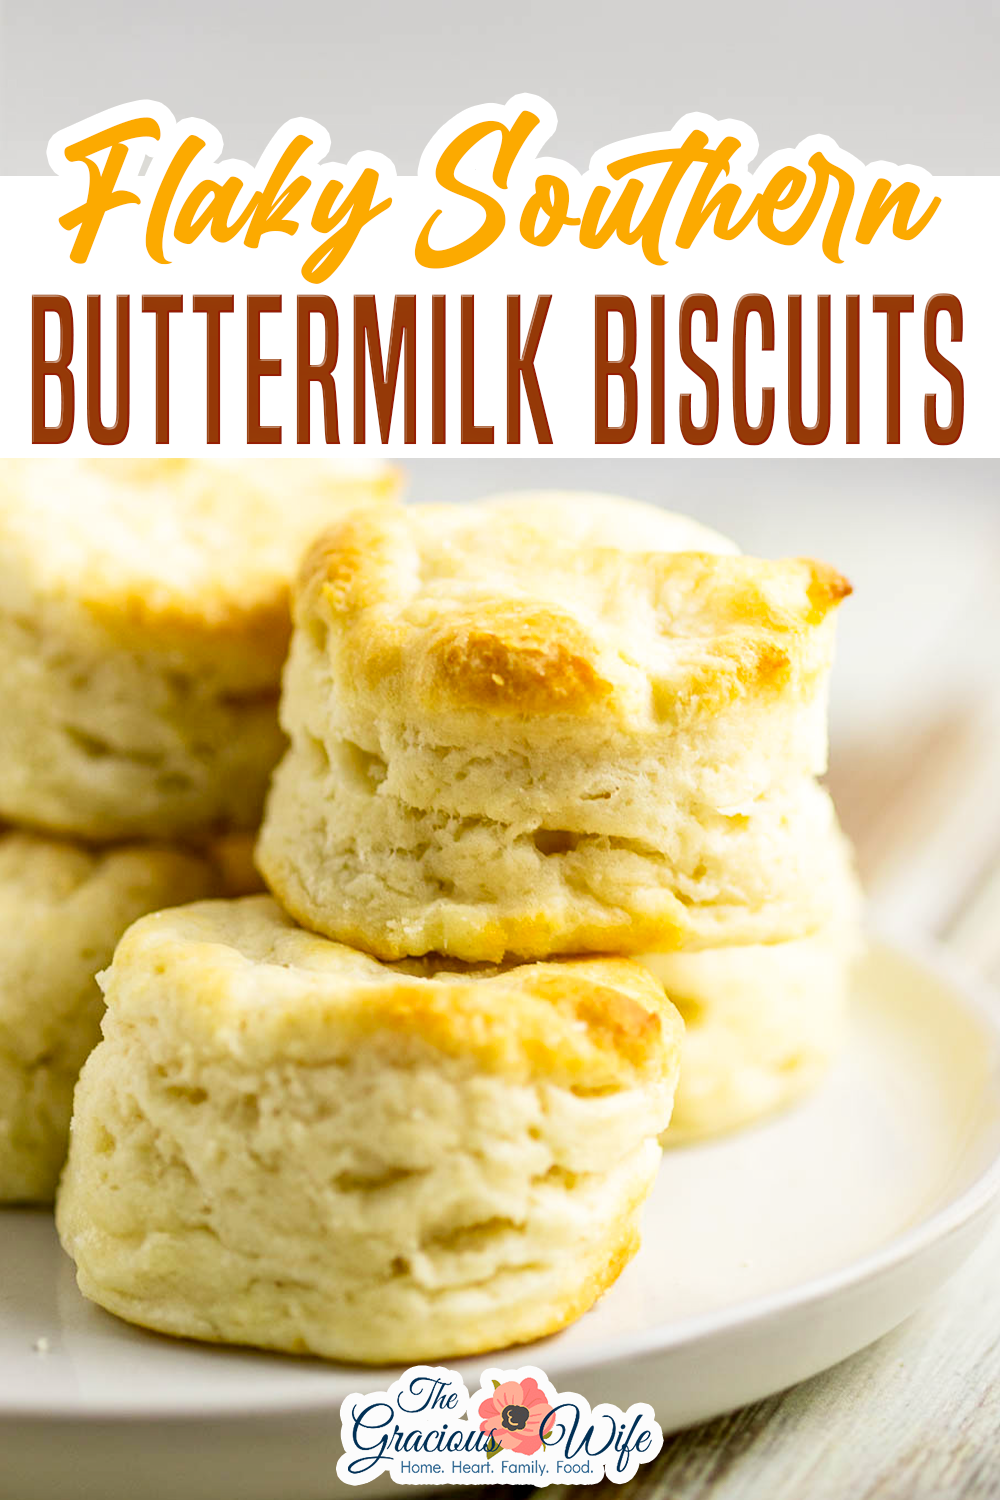 Flaky Southern Buttermilk Biscuits Recipe In 2020 Southern Buttermilk Biscuits Recipes Buttermilk Biscuits Recipe